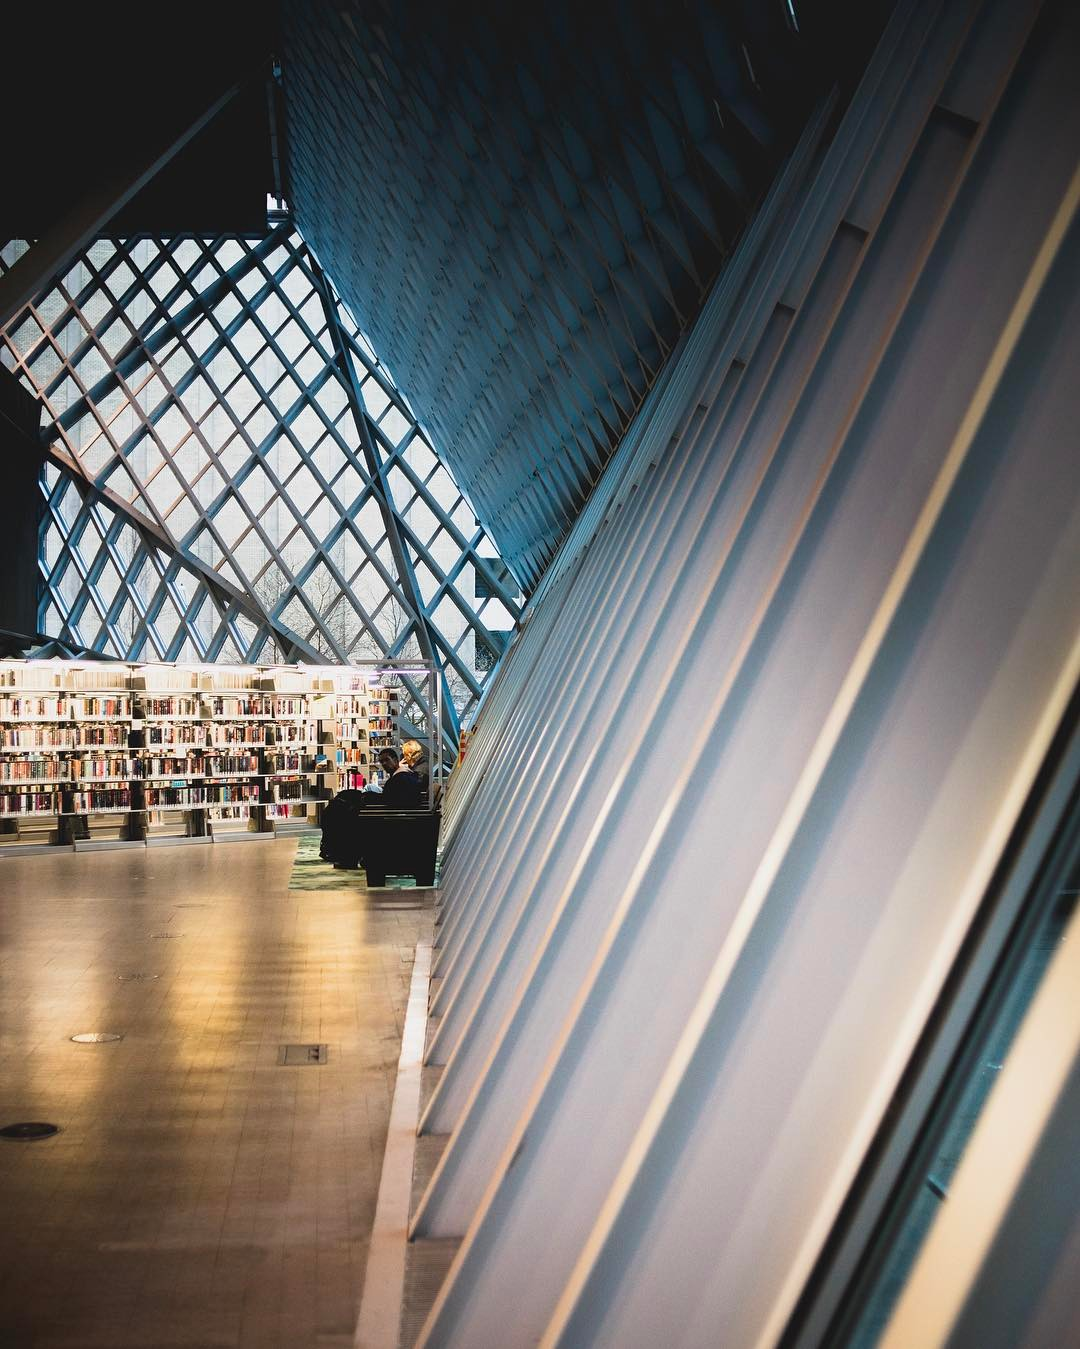 One more from my Seattle Public Library series This placehellip